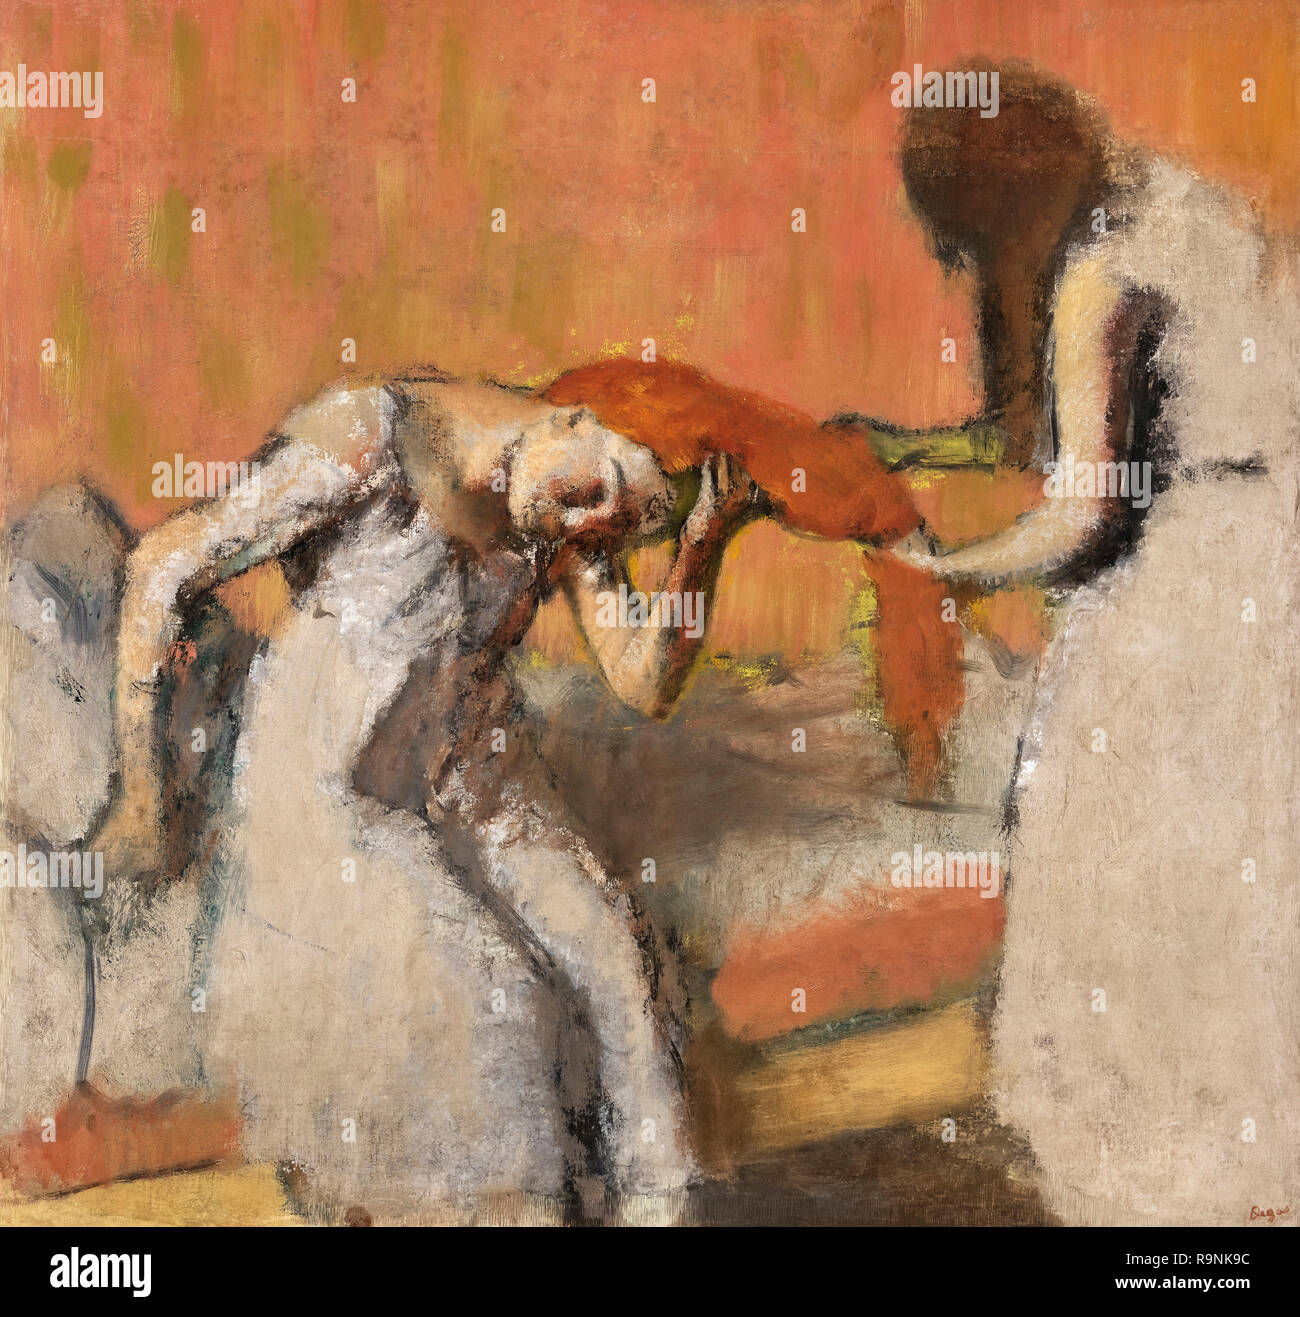 La Coiffure by Edgar Degas (1834-1917), oil on canvas, c.1893 - Stock Image